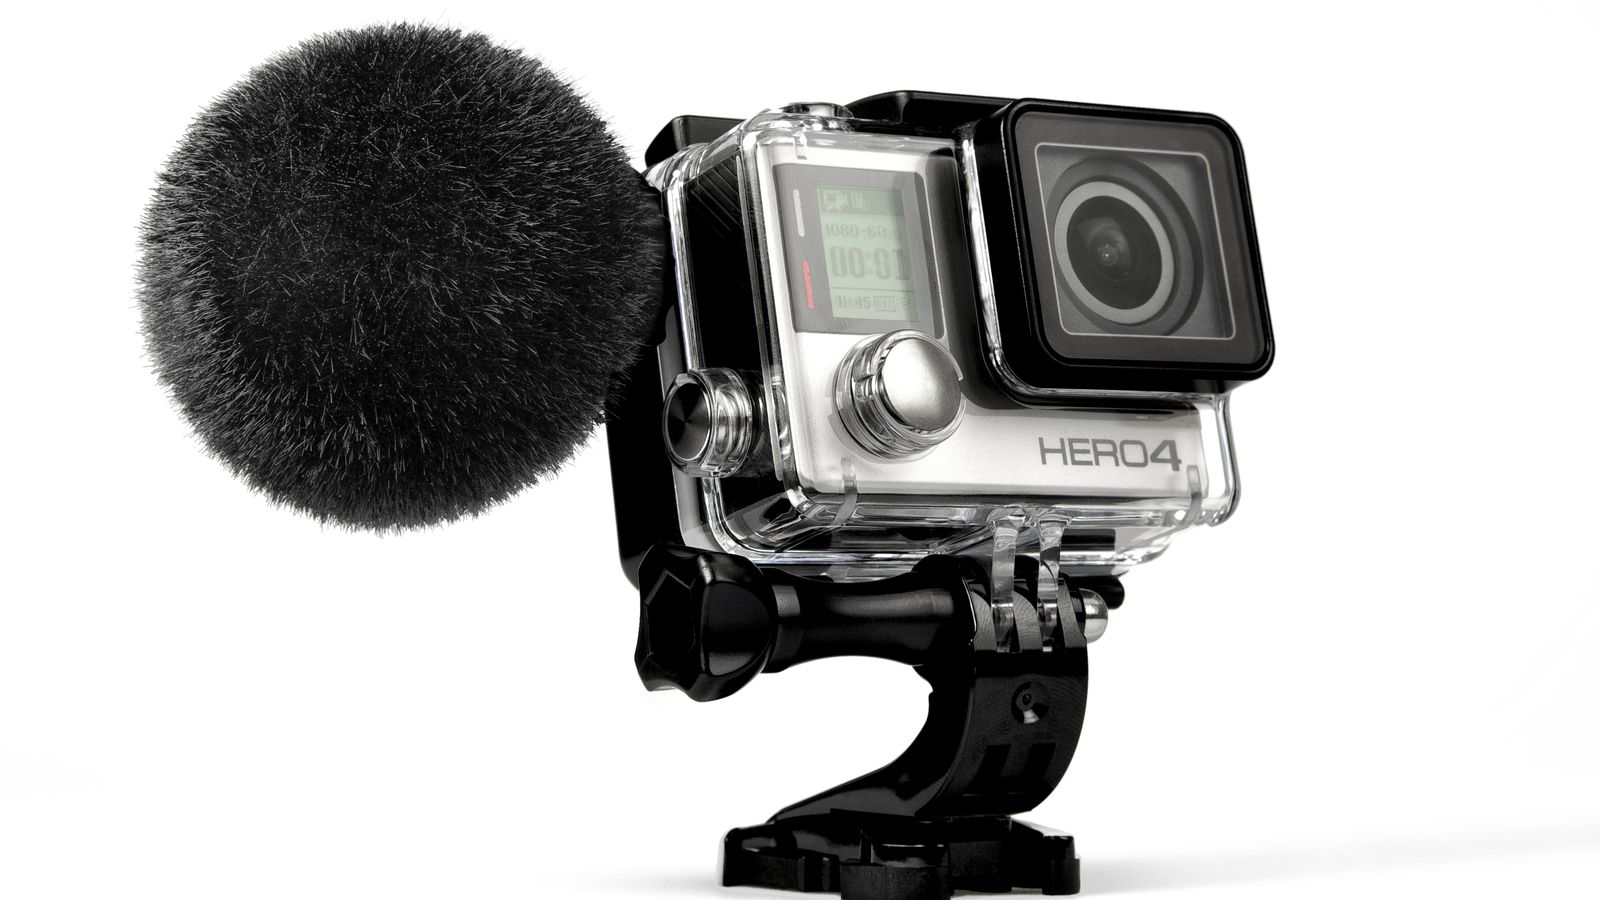 Sennheiser made a GoPro microphone that captures the sweet sound of your worst wipeouts